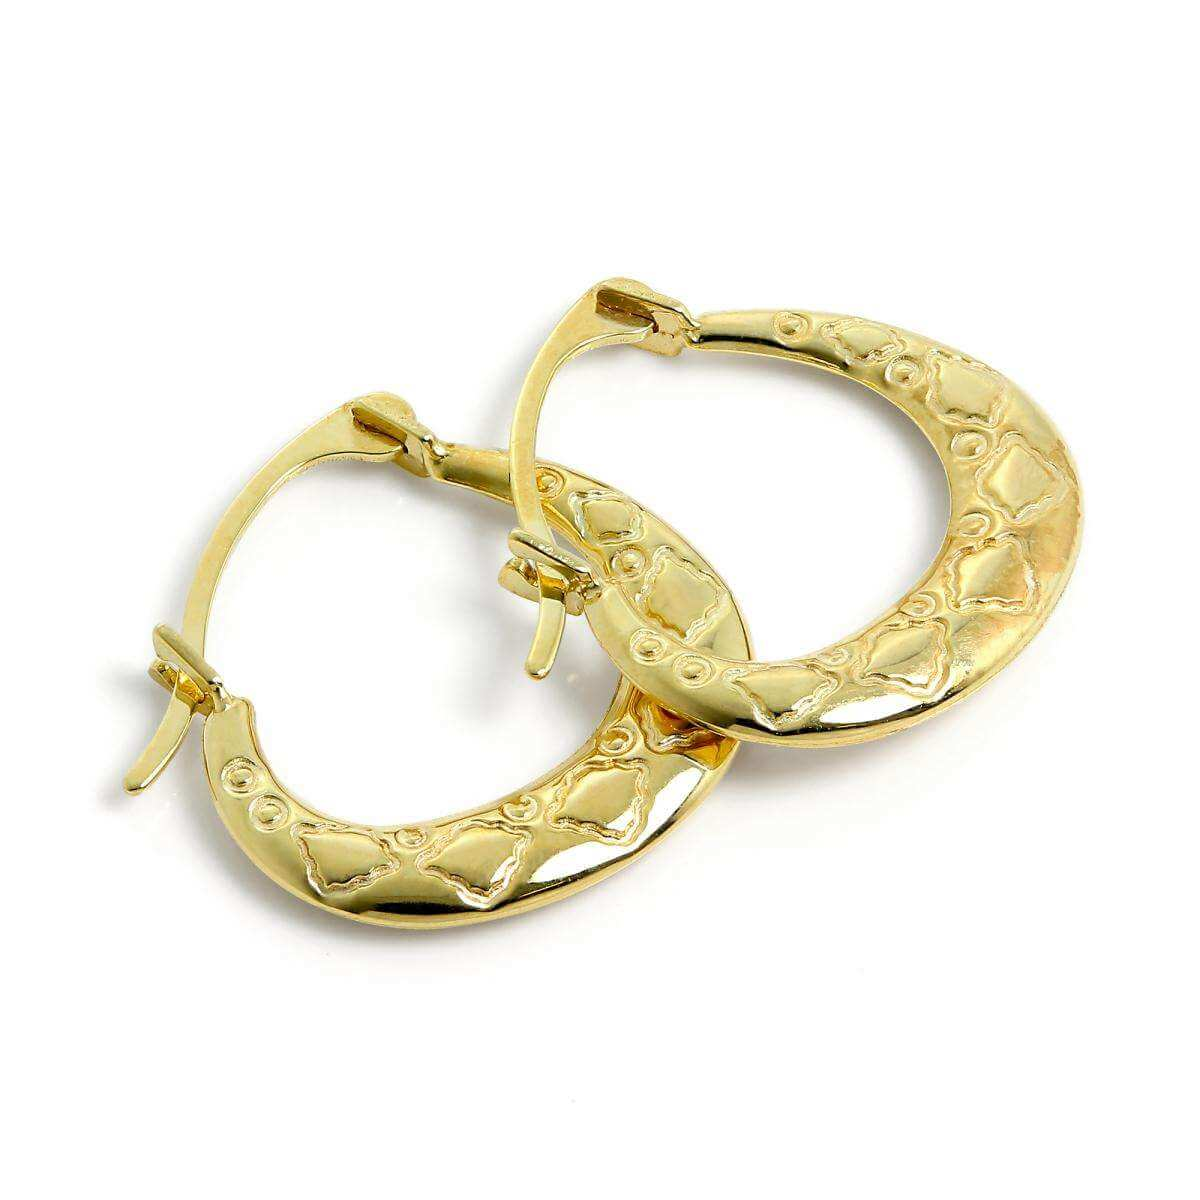 Small 9ct Gold Patterned Creole Hoop Earrings